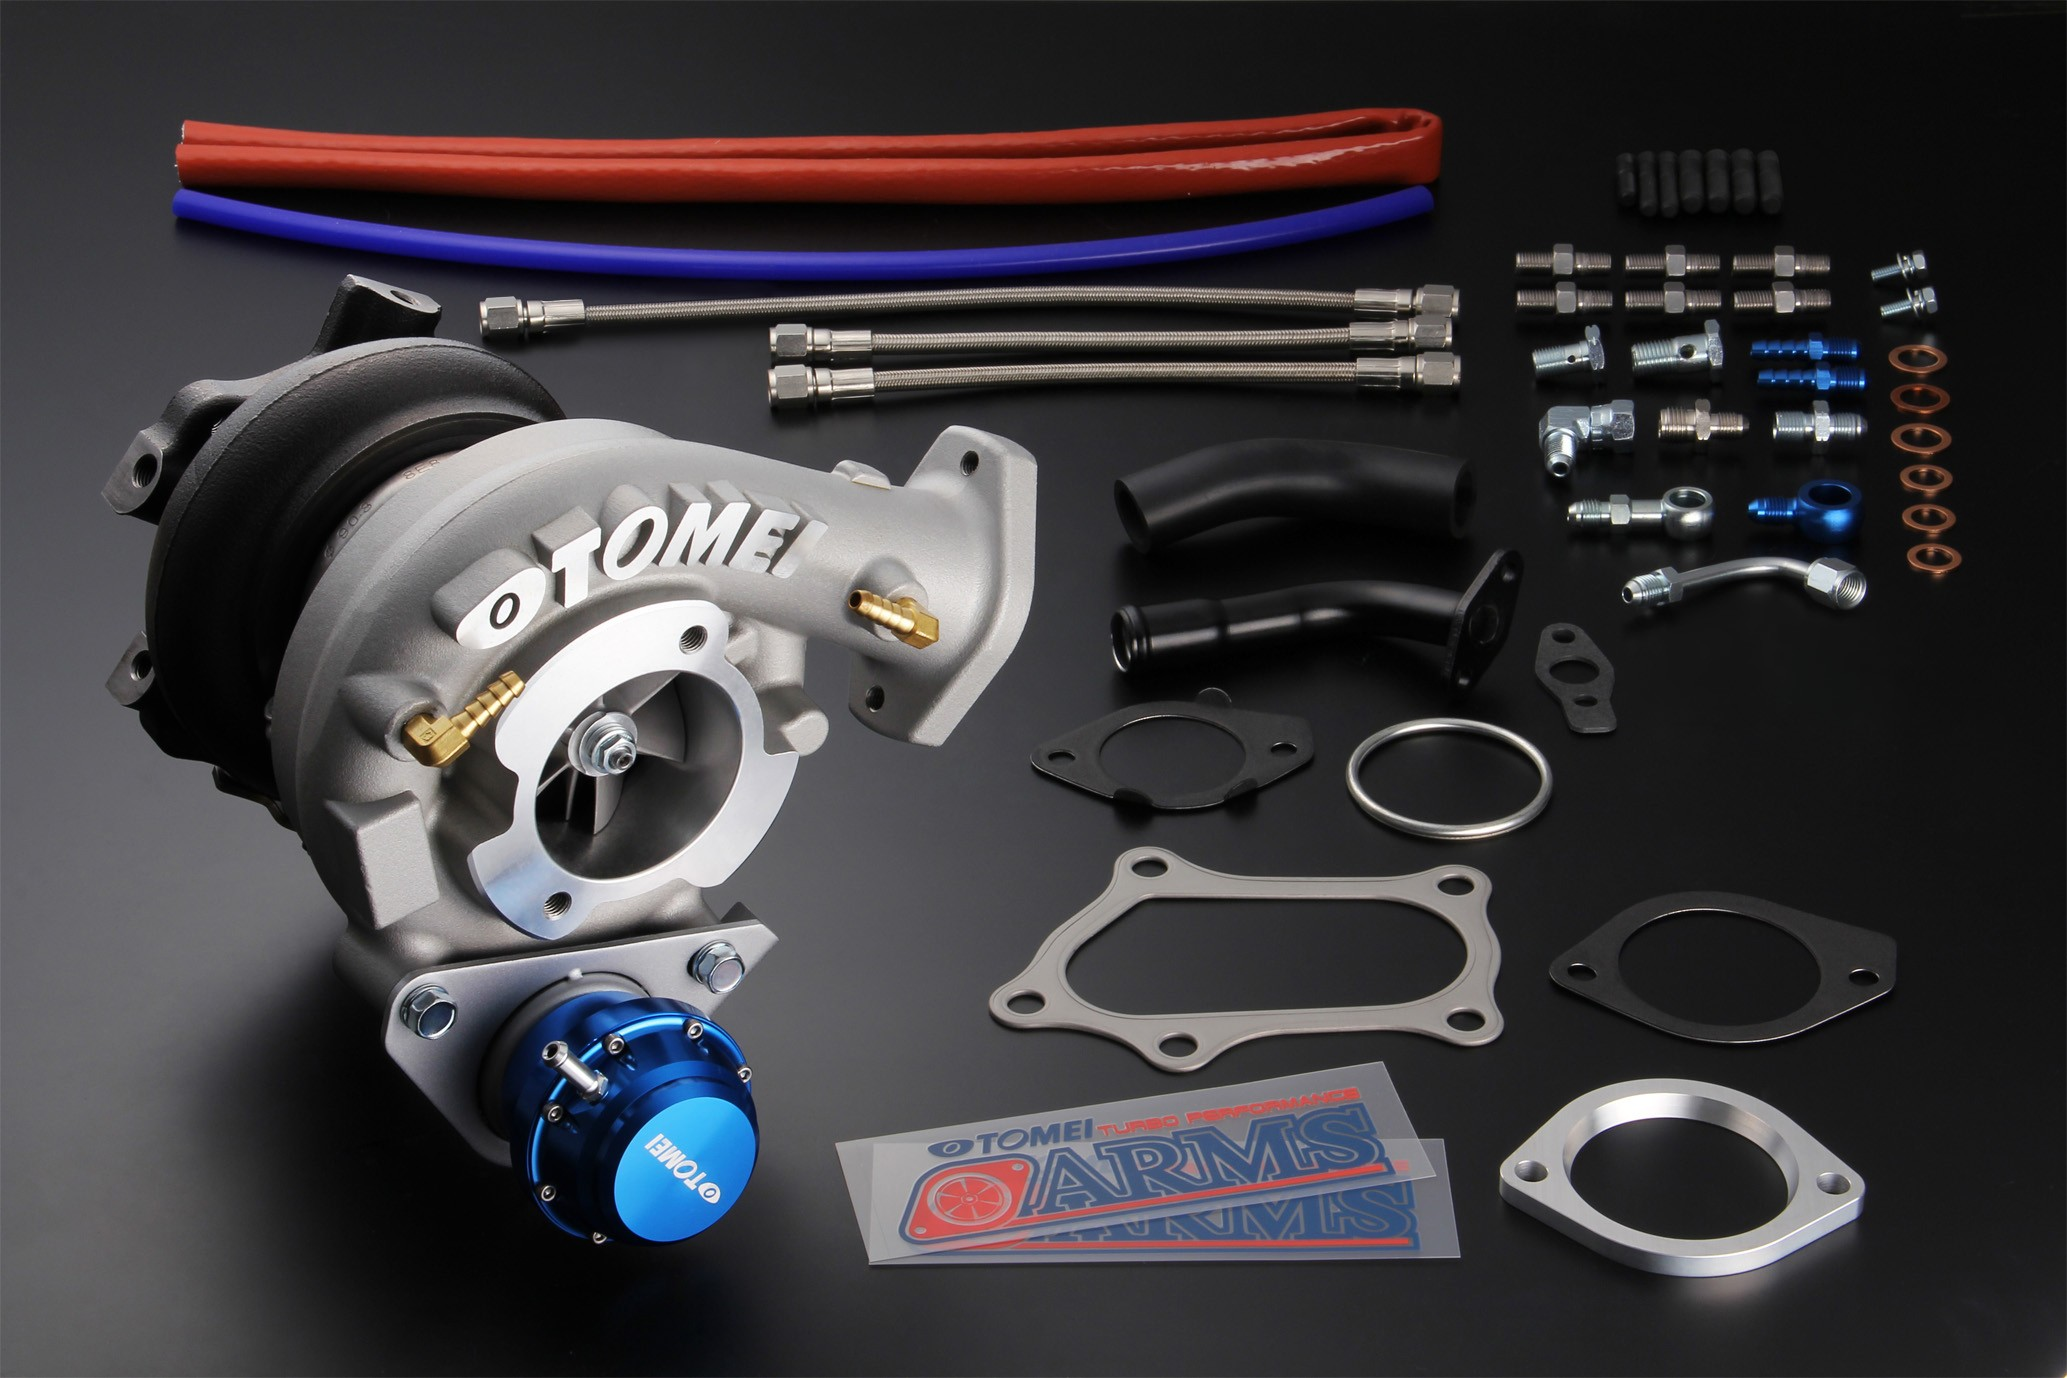 1JZ-GTE Tomei Turbine Kit